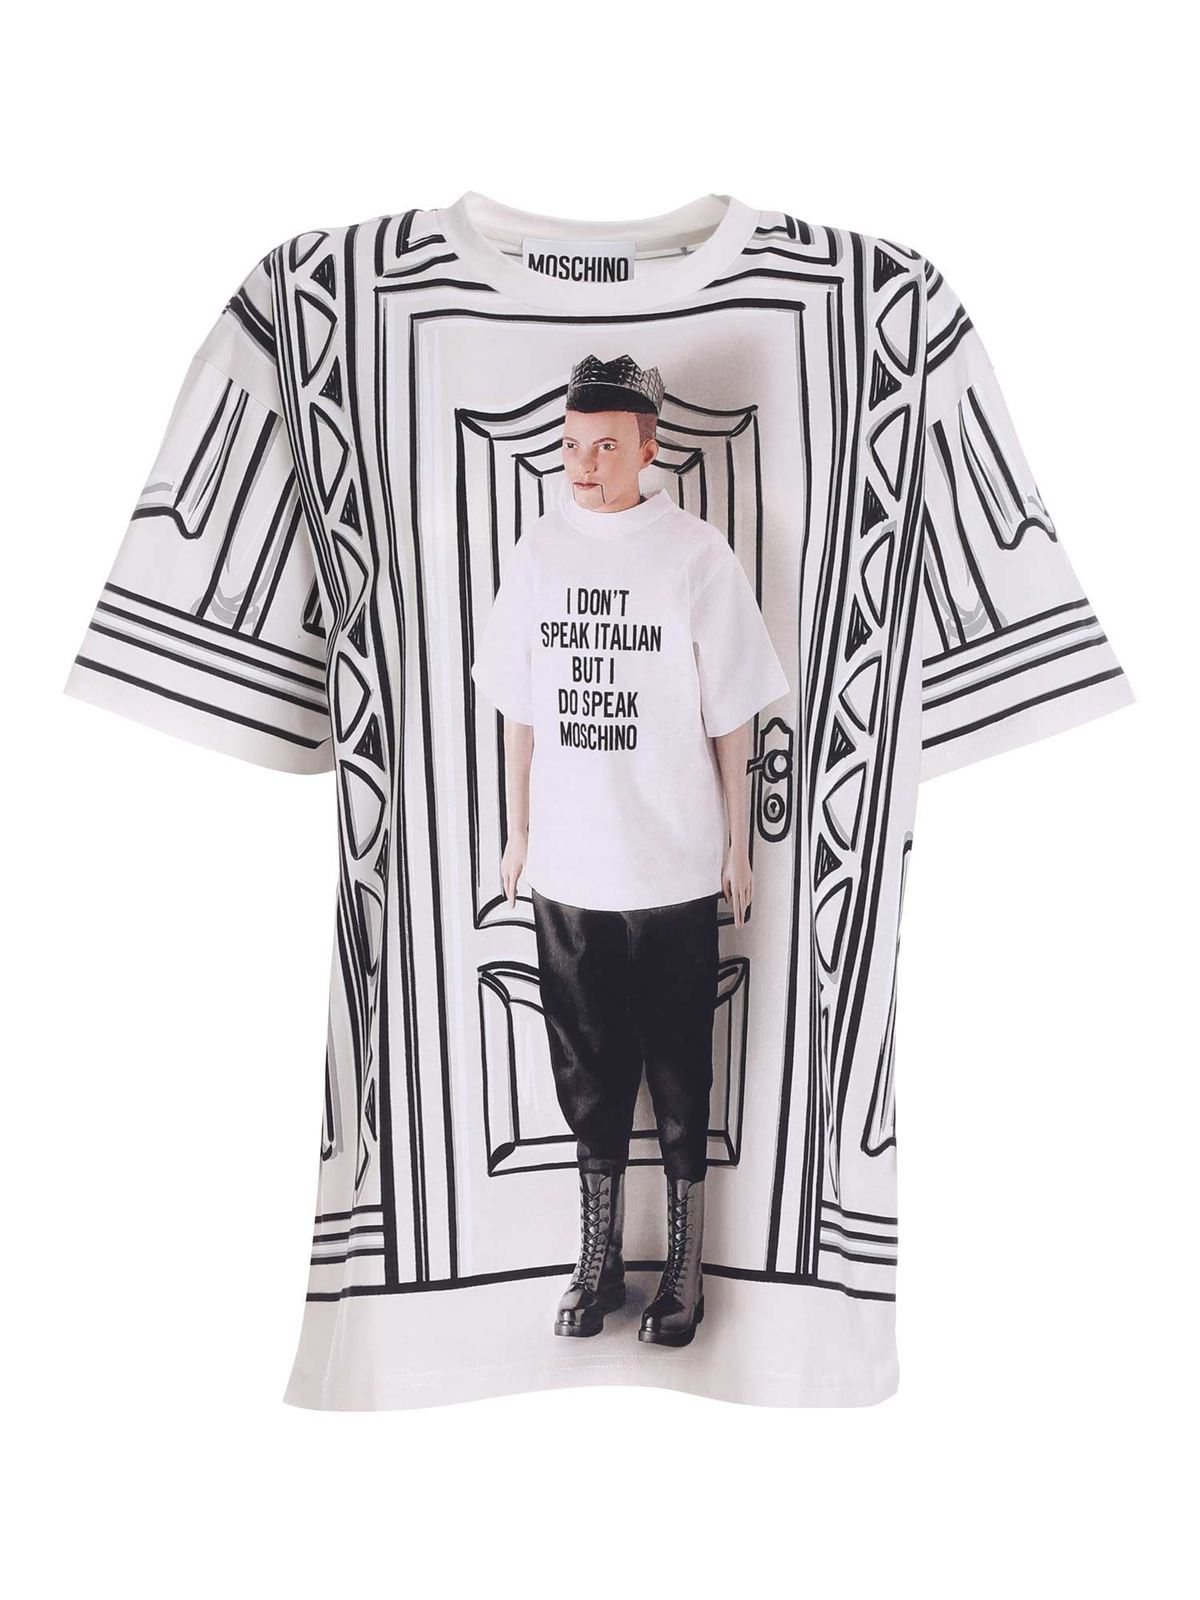 Moschino PRINTED T-SHIRT IN BLACK AND WHITE